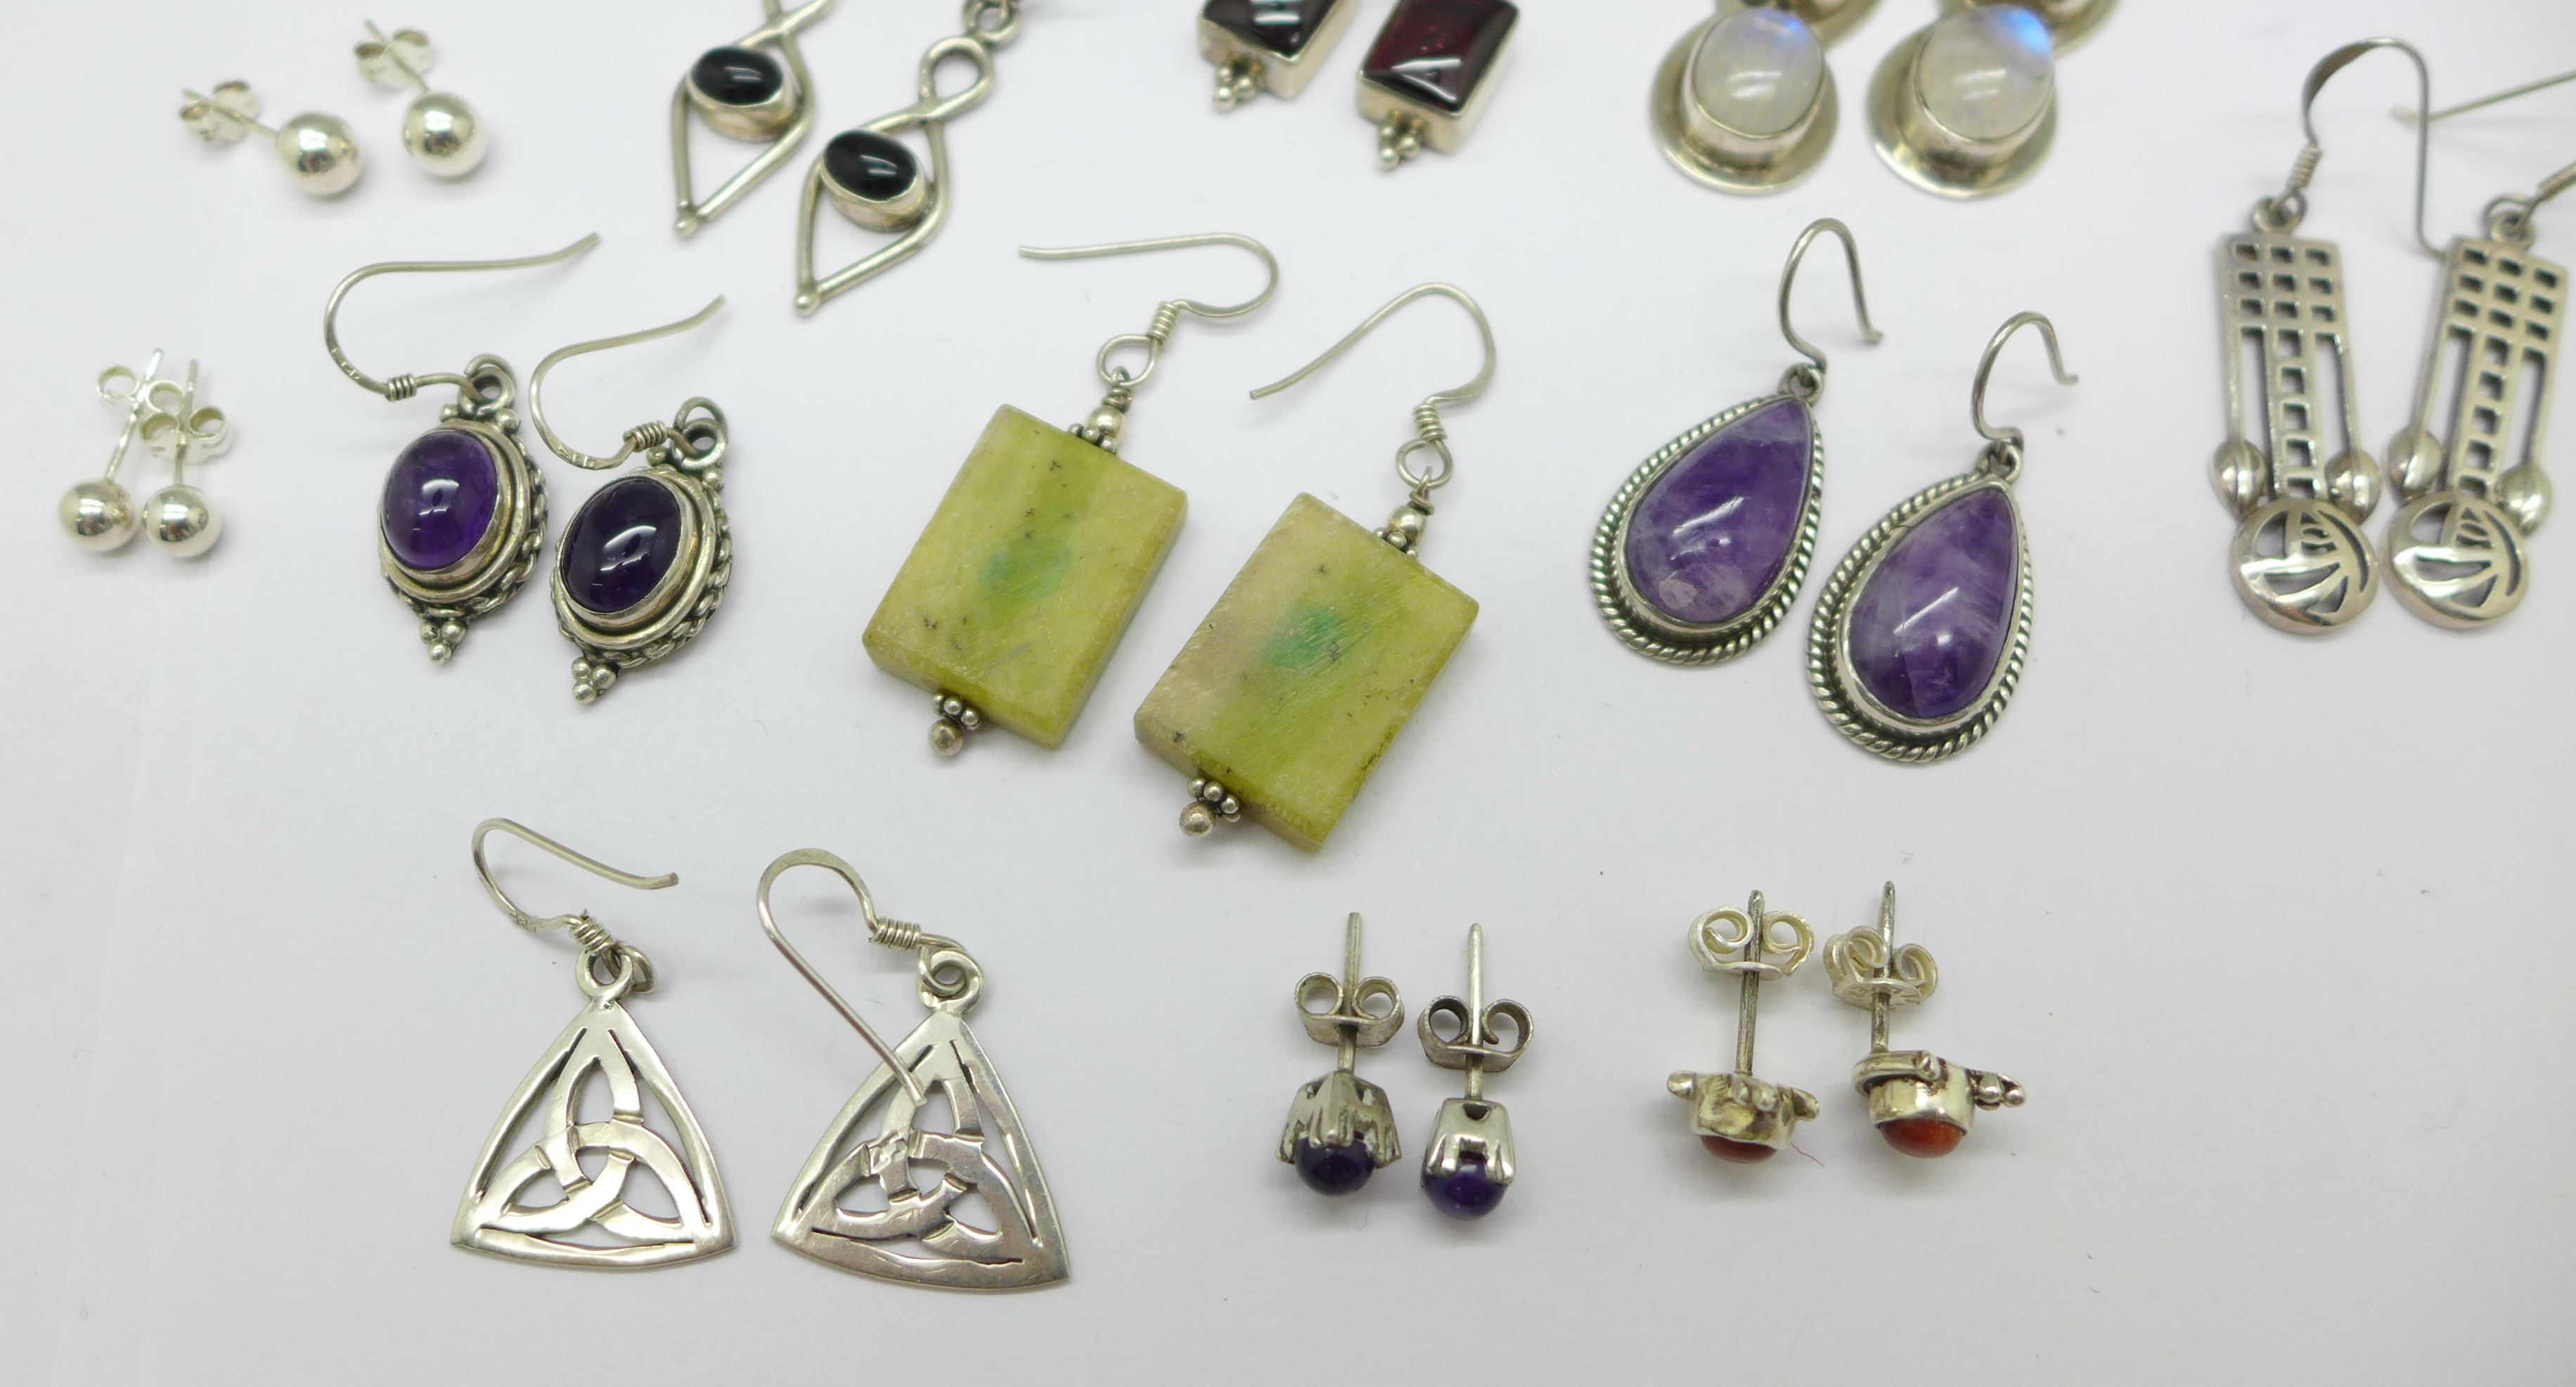 Fifteen pairs of silver and stone set earrings, total weight 60g - Image 3 of 4